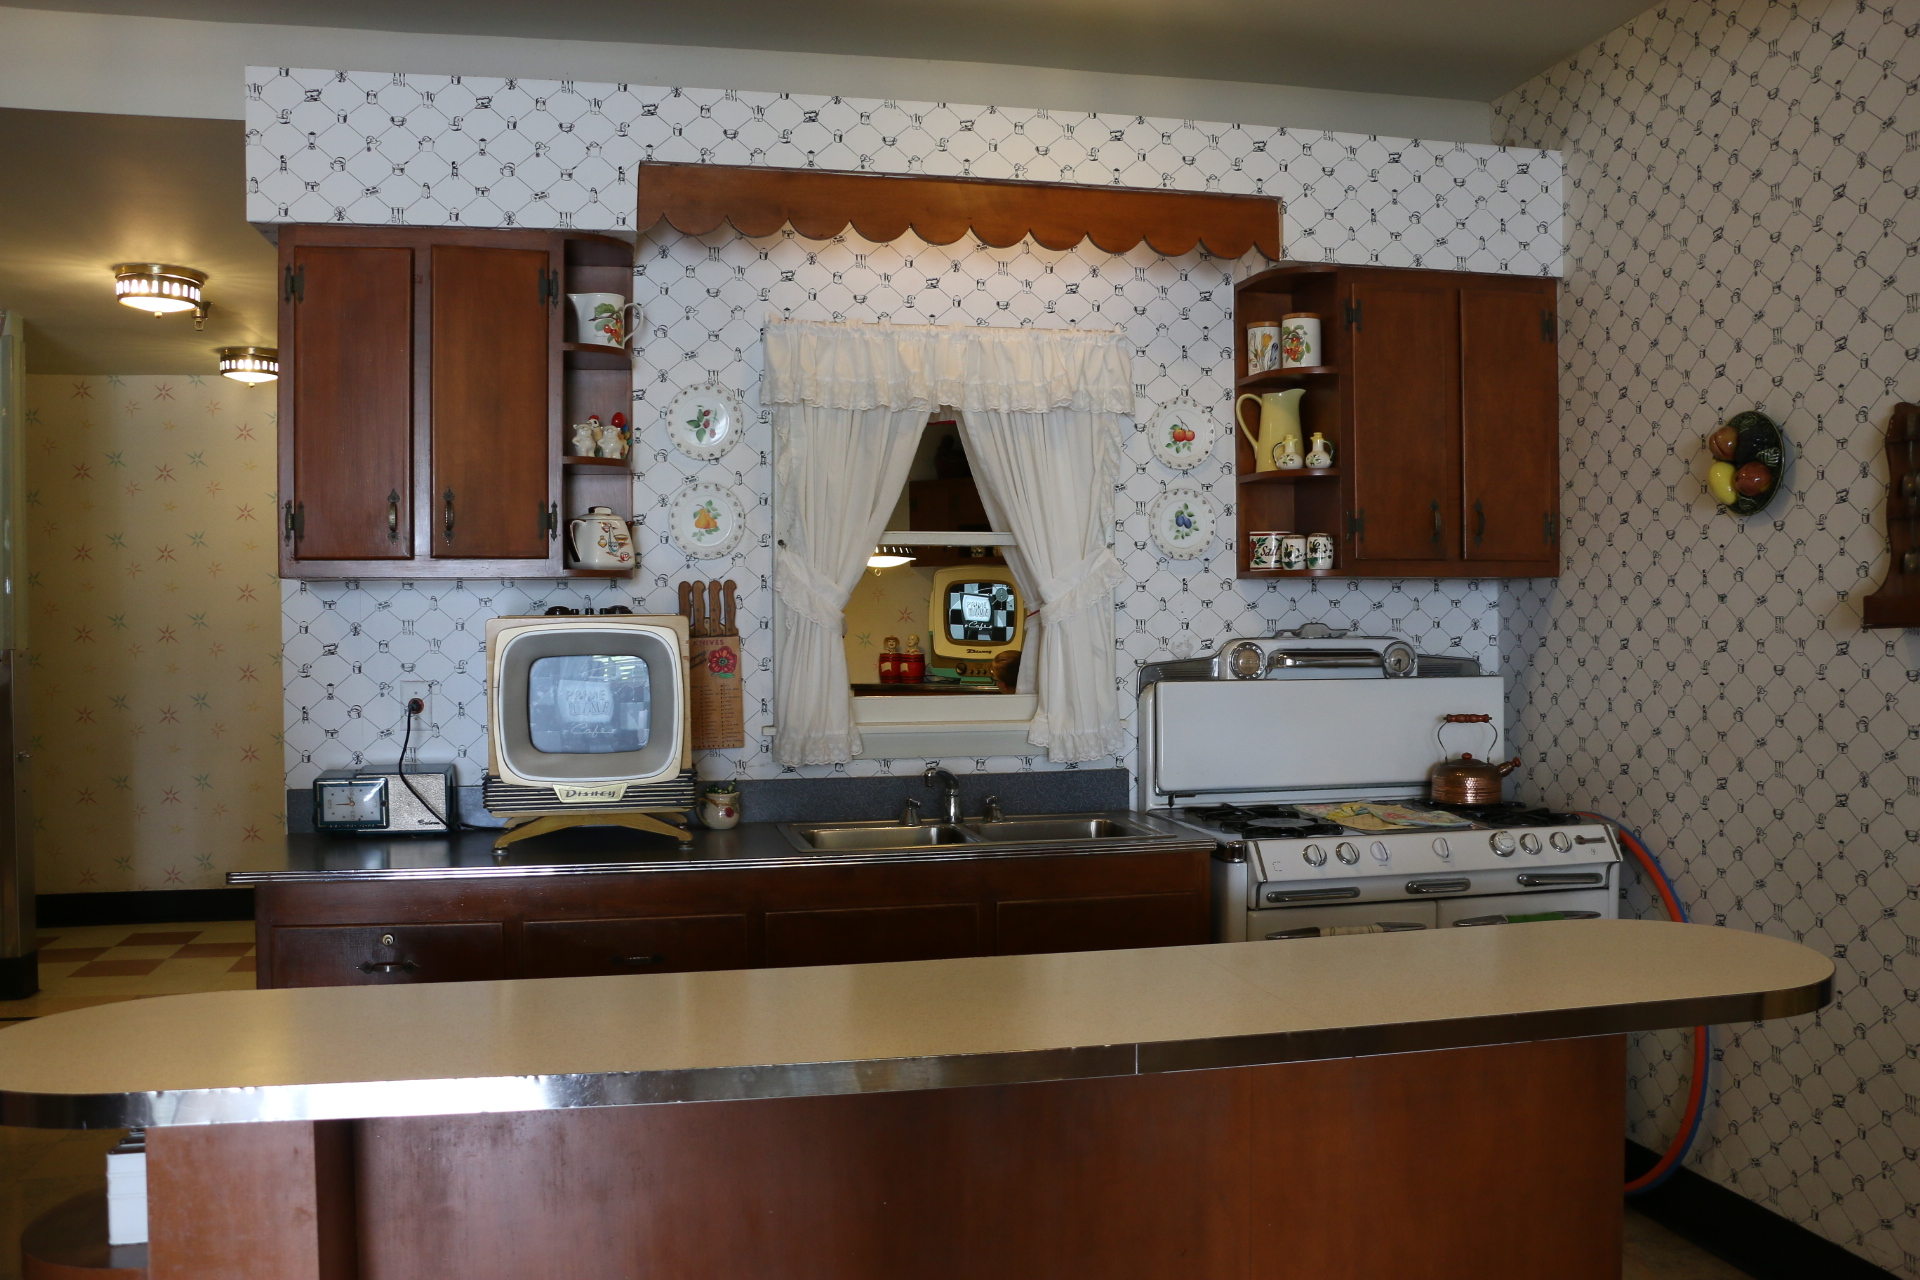 retro kitchen at 50s prime time